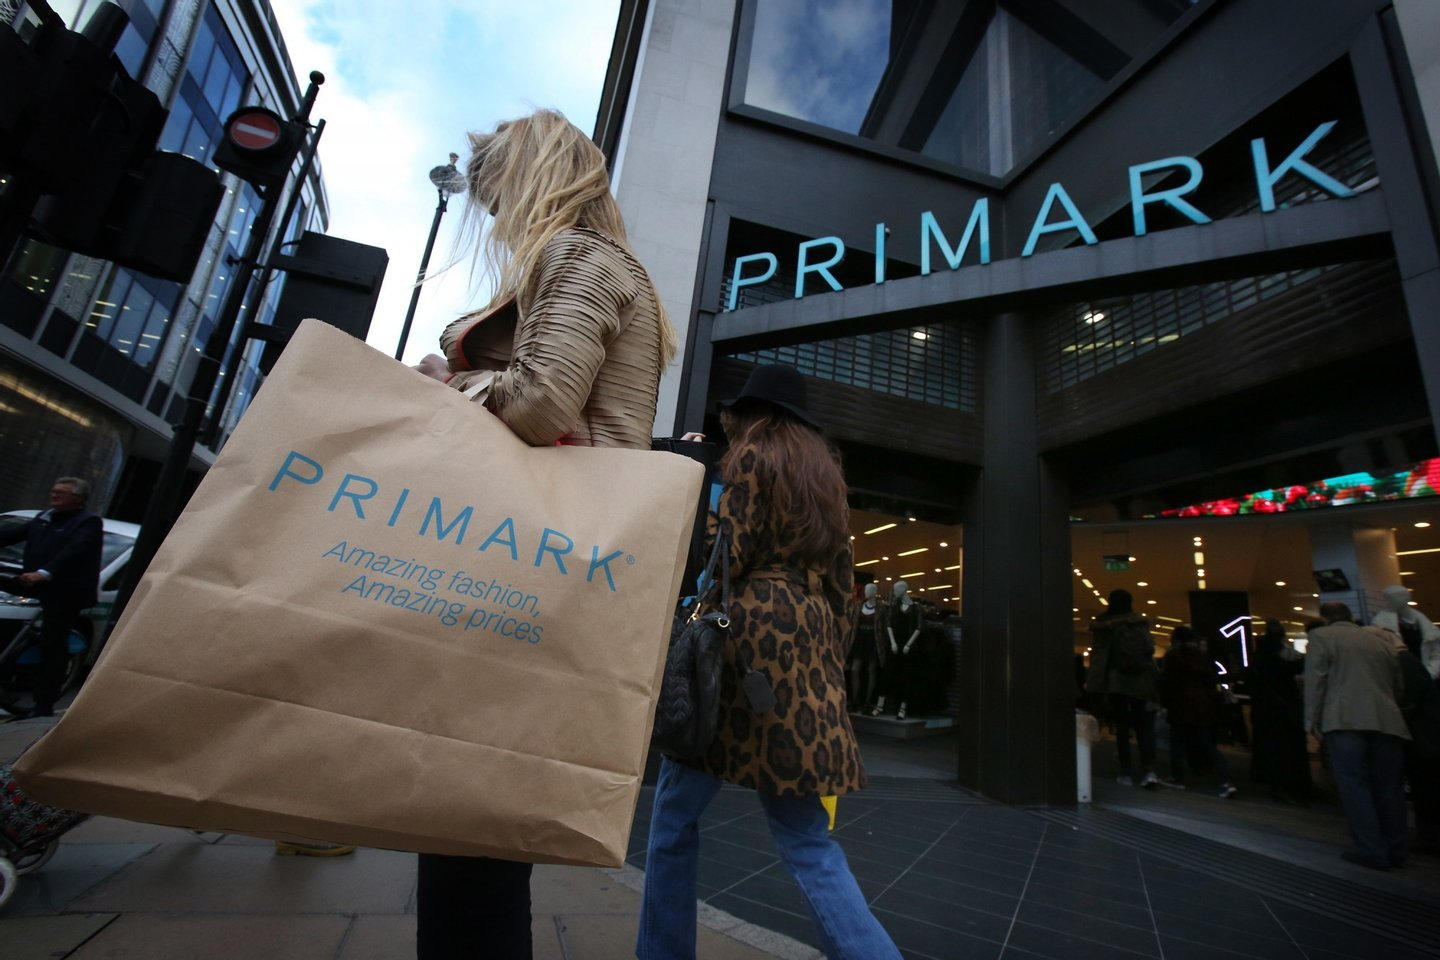 LONDON, ENGLAND - NOVEMBER 05:  A customer waits with her purchases outside Primark's flagship store on Oxford Street on November 5, 2014 in London, England. Retail giant Marks and Spencer have shown a continued decline in clothes sales as budget fashion chain Primark has delivered a 16% increase in its sales.  (Photo by Peter Macdiarmid/Getty Images)